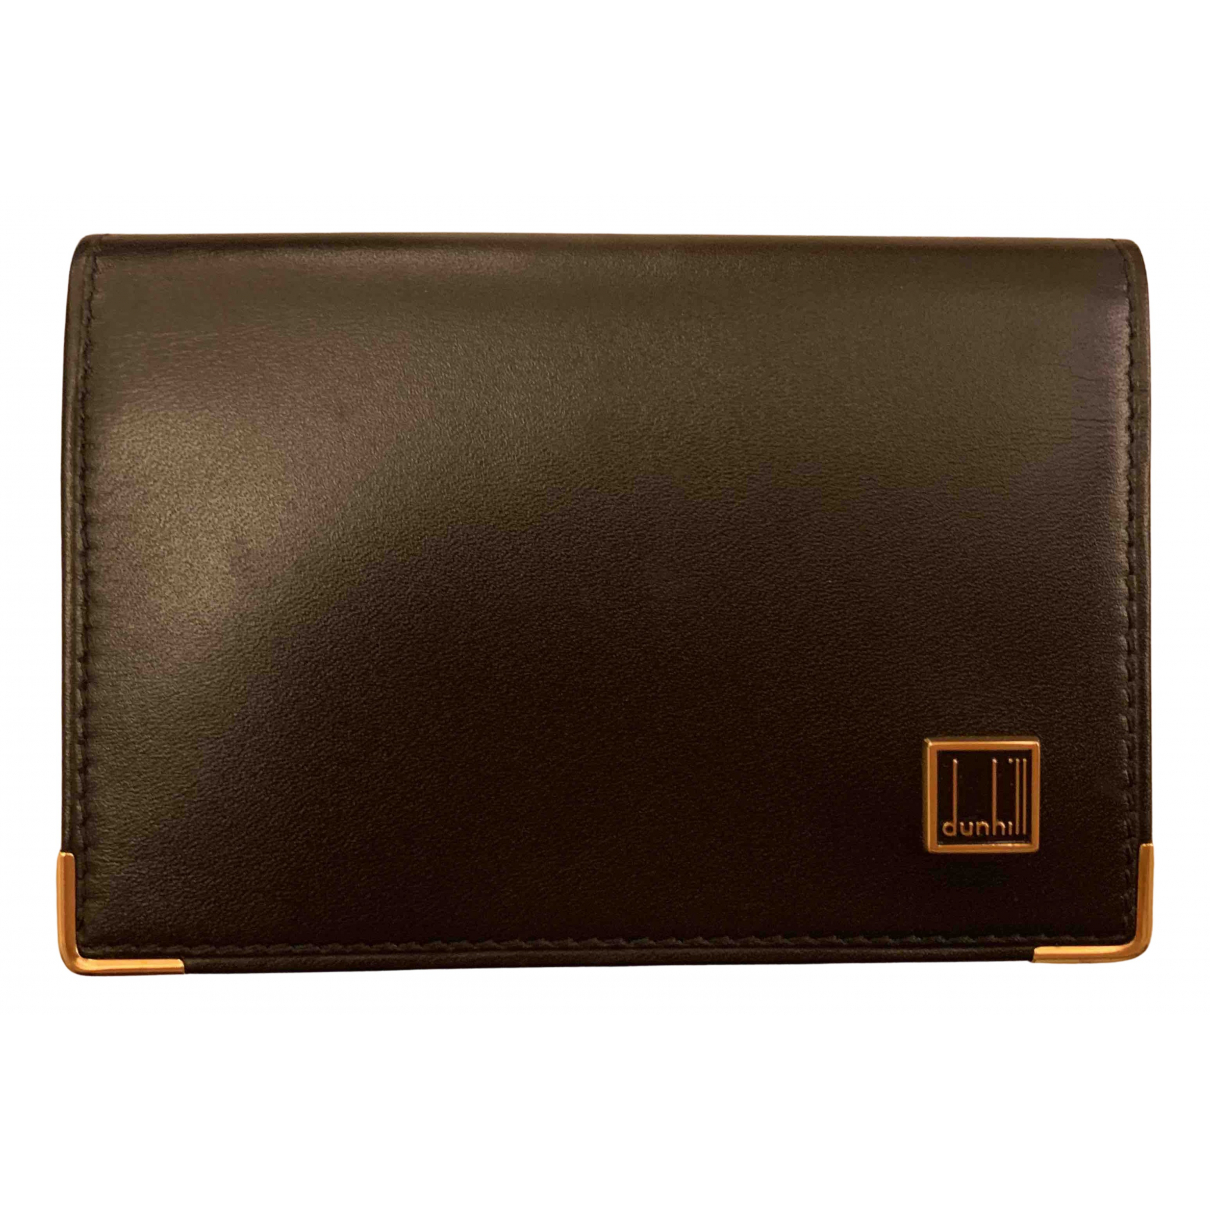 Alfred Dunhill N Black Leather Small bag, wallet & cases for Men N